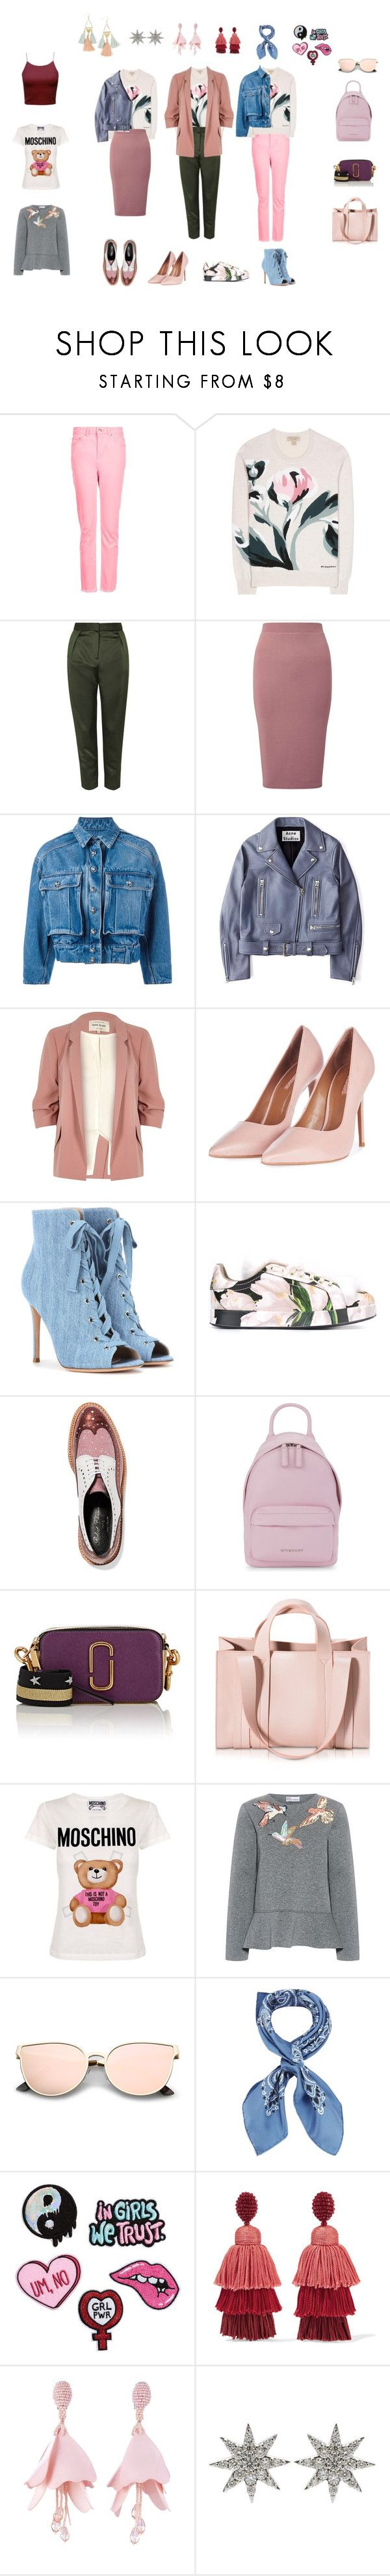 """Albina"" by lar-ra on Polyvore featuring Topshop, Burberry, Miss Selfridge, Dolce&Gabbana, Acne Studios, River Island, Gianvito Rossi, Robert Clergerie, Givenchy и Marc Jacobs"